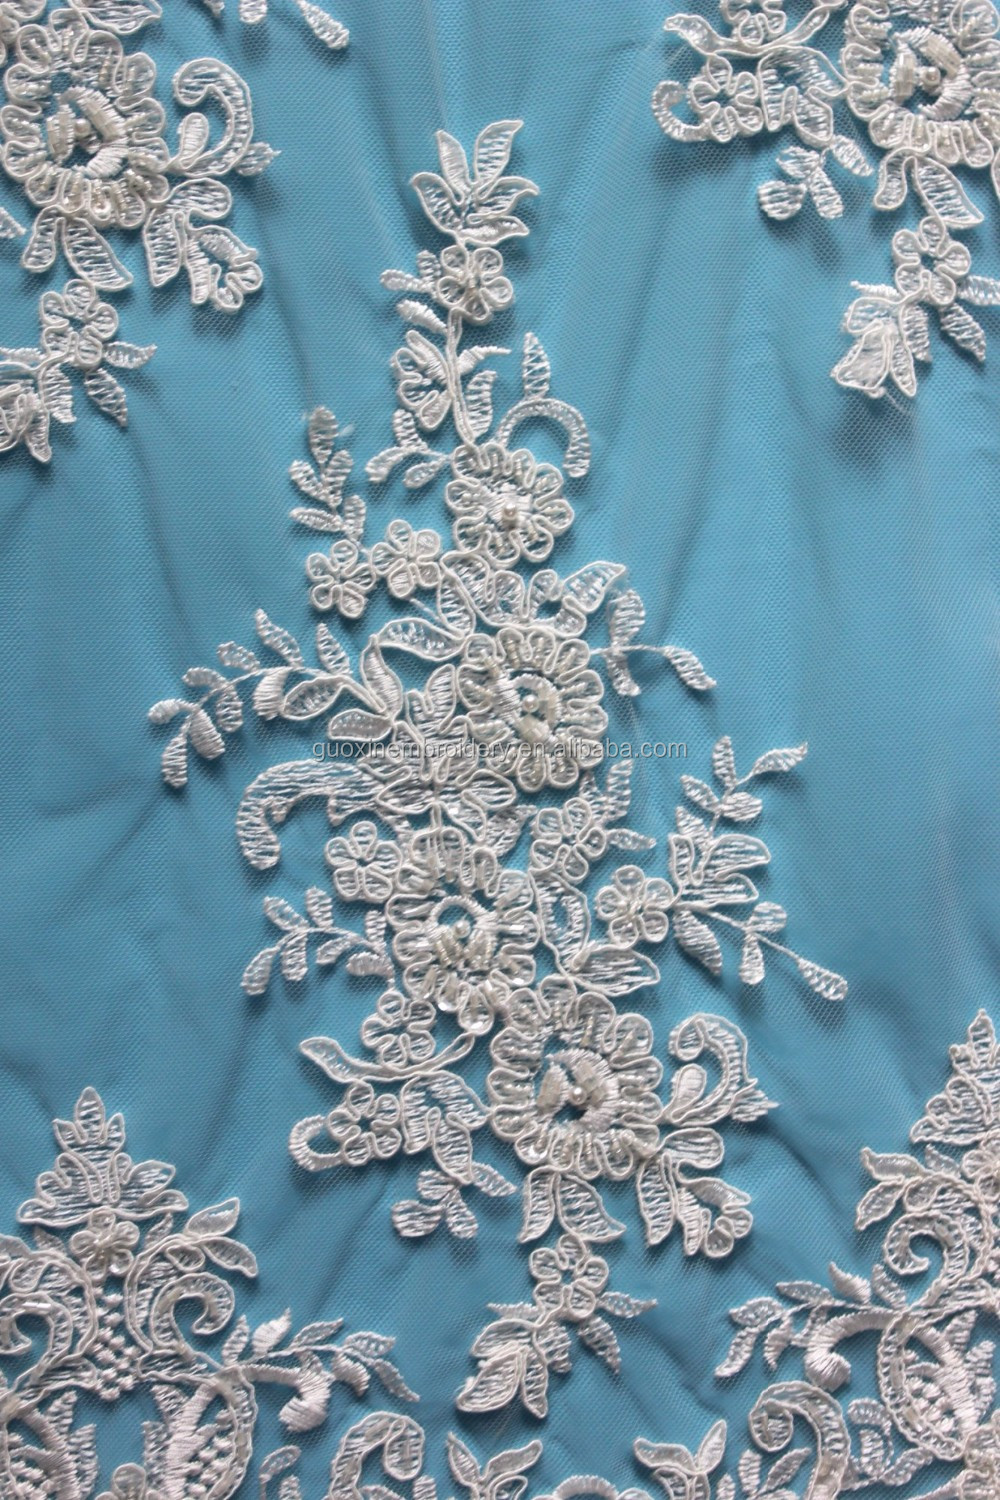 wholesale clothes turkey istanbul lace fabric embroidery lace fabric with beads